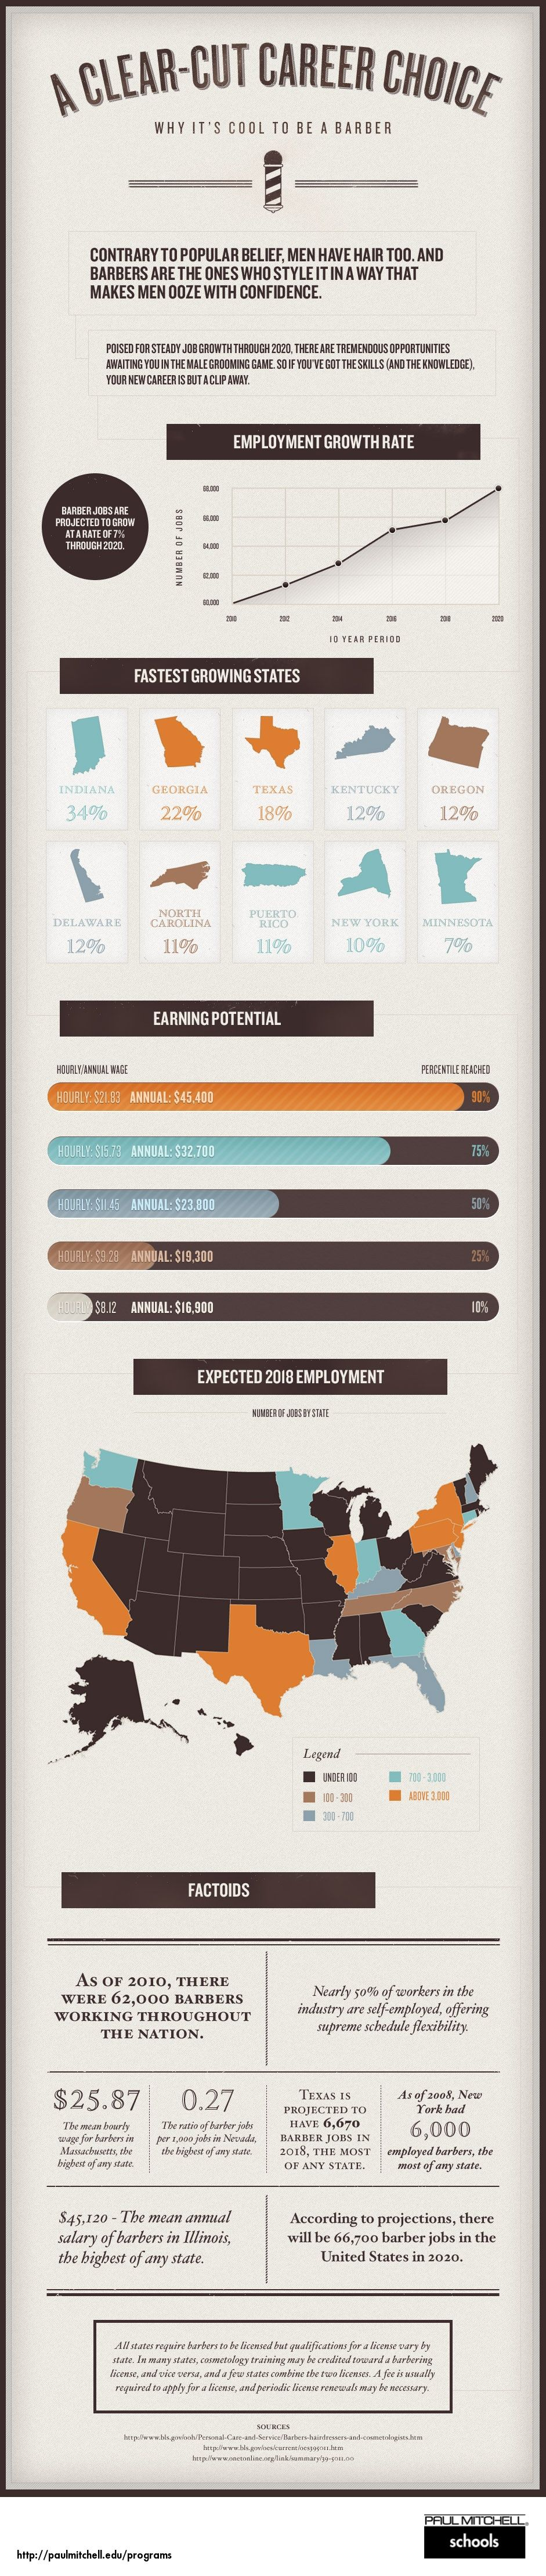 See why barbering is a clear cut career choice in our Barbering Career Infographic.